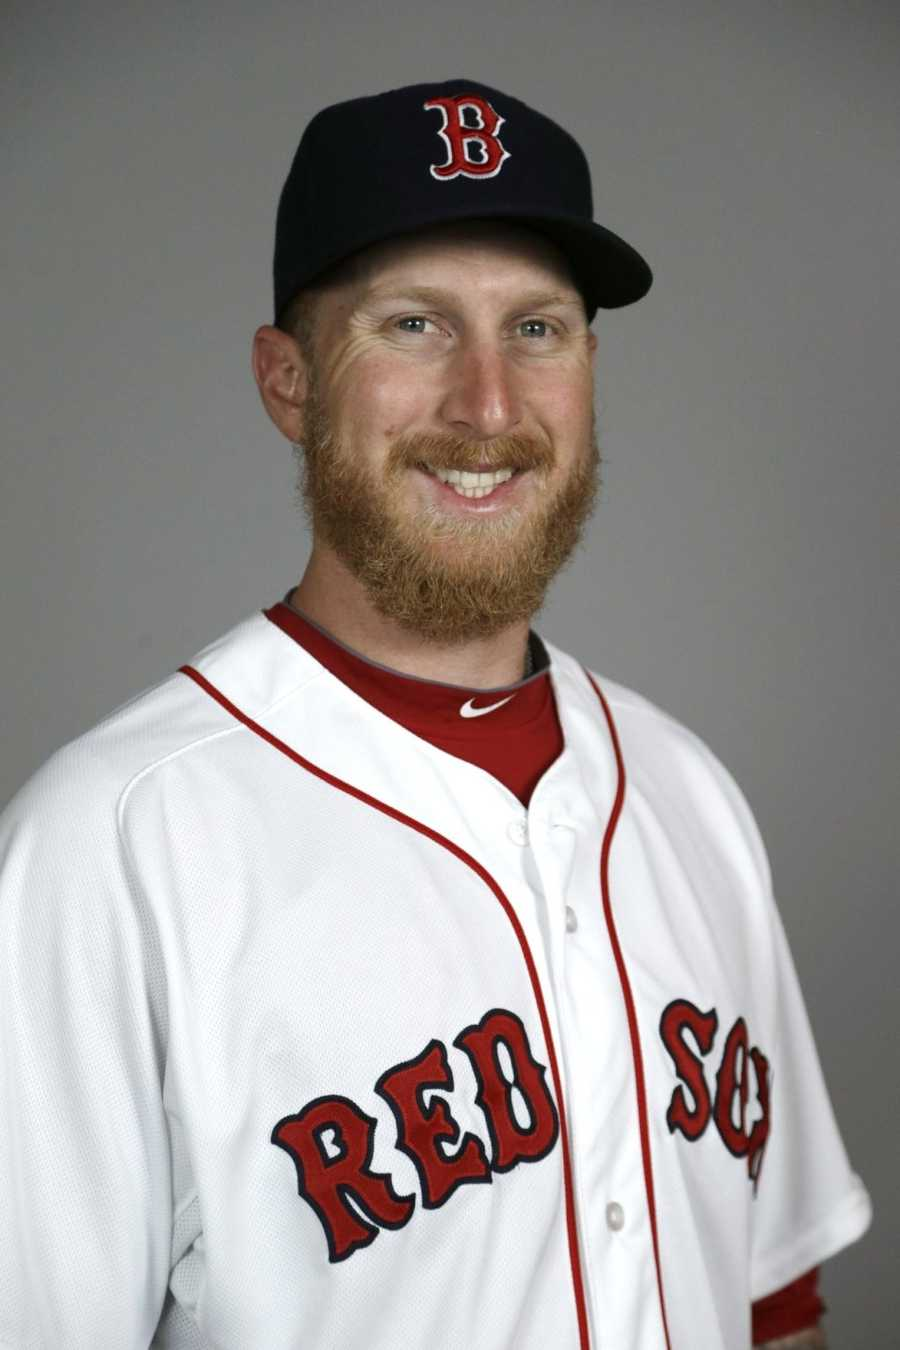 19) Mike Carp, outfielder - $1.4 million